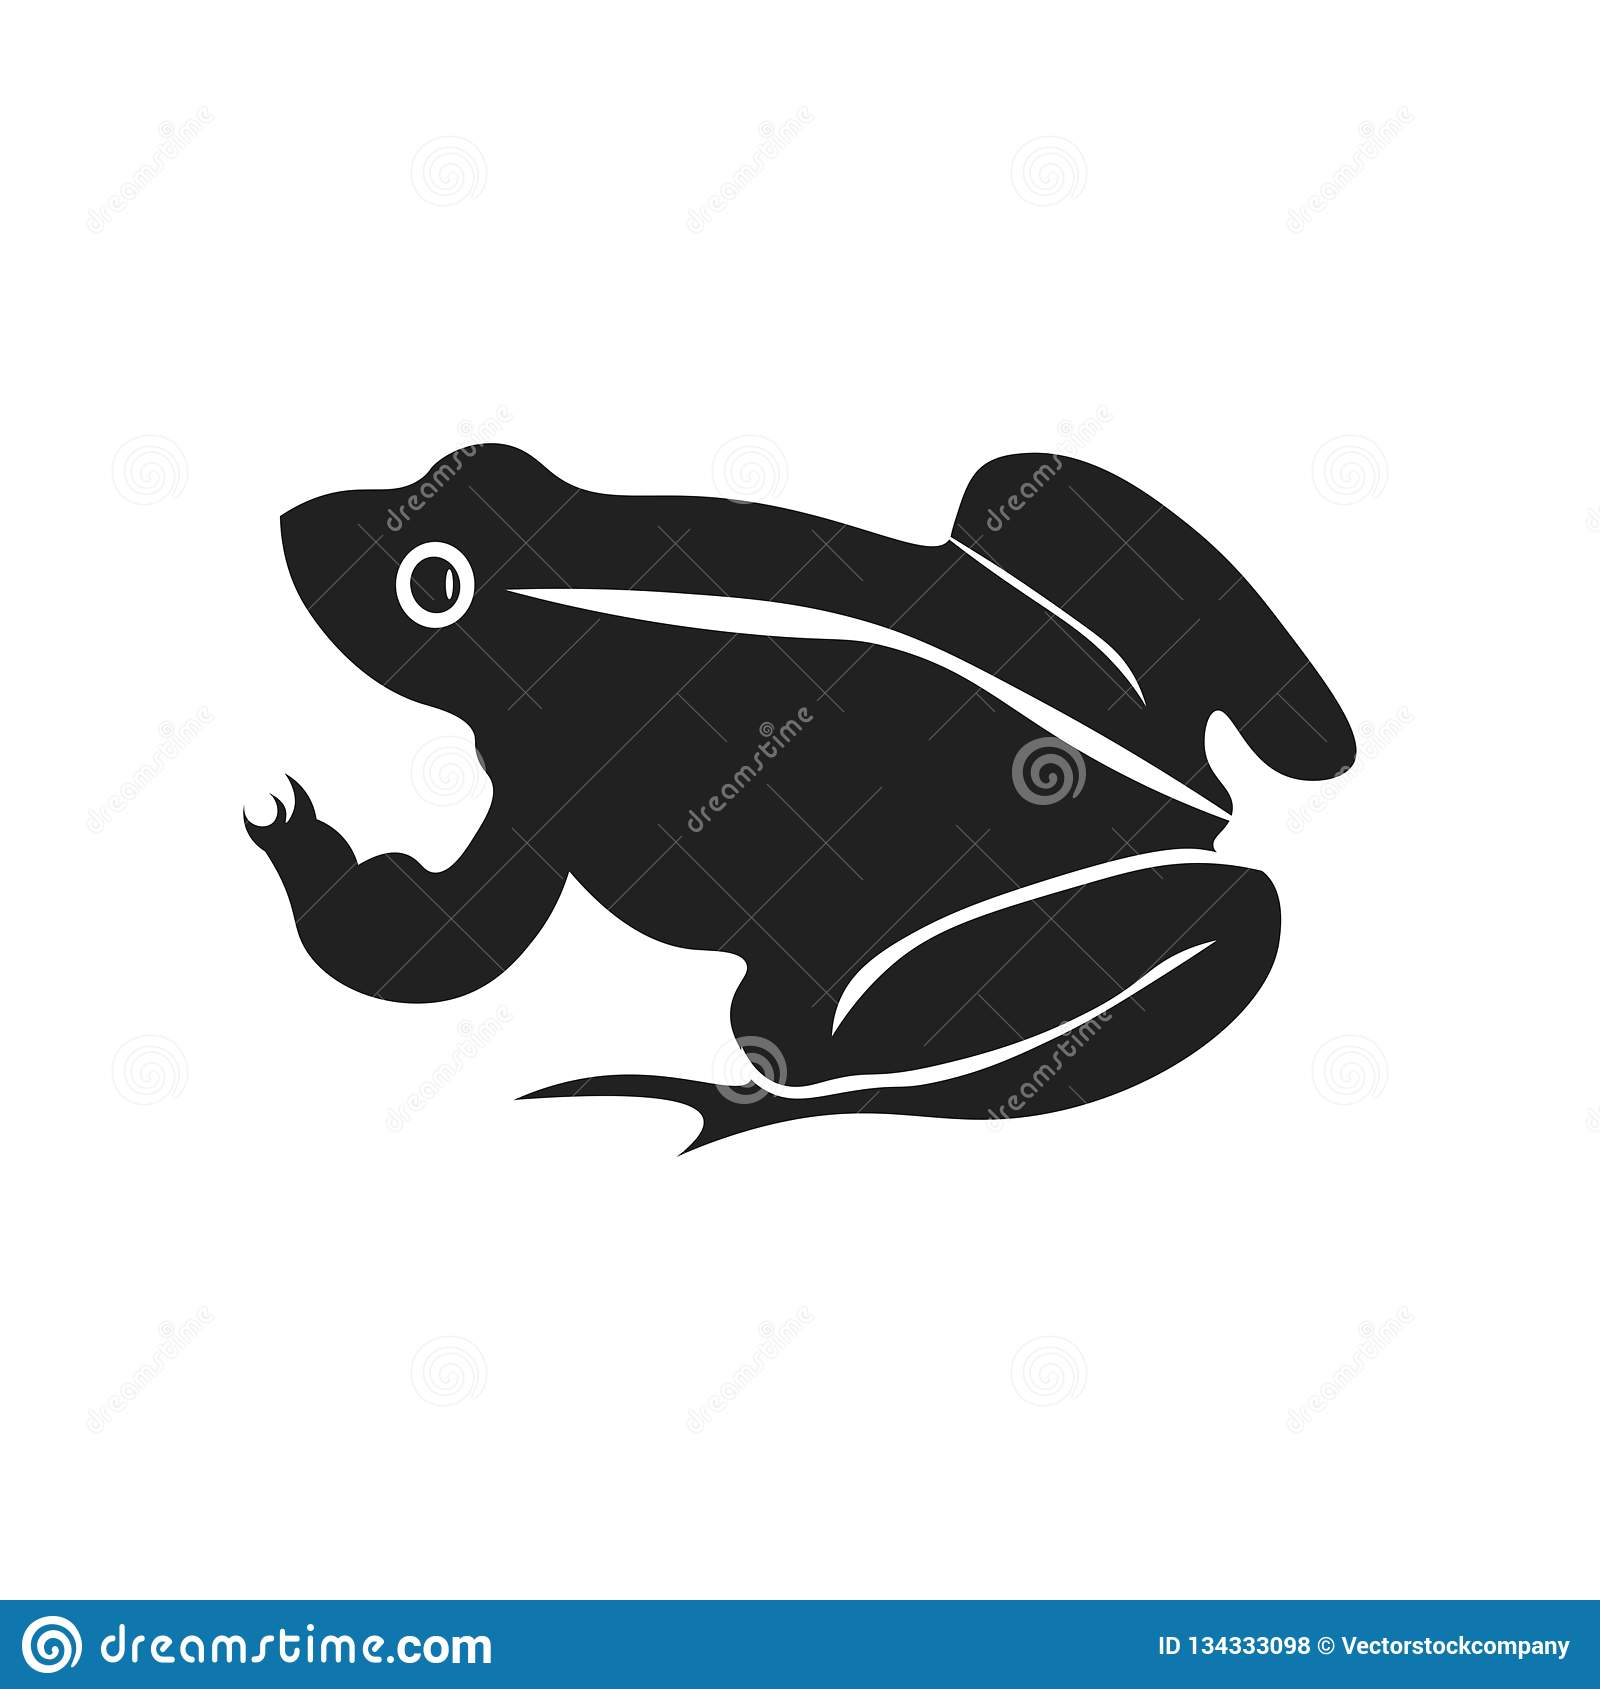 Frog icon vector sign and symbol isolated on white background, Frog logo concept